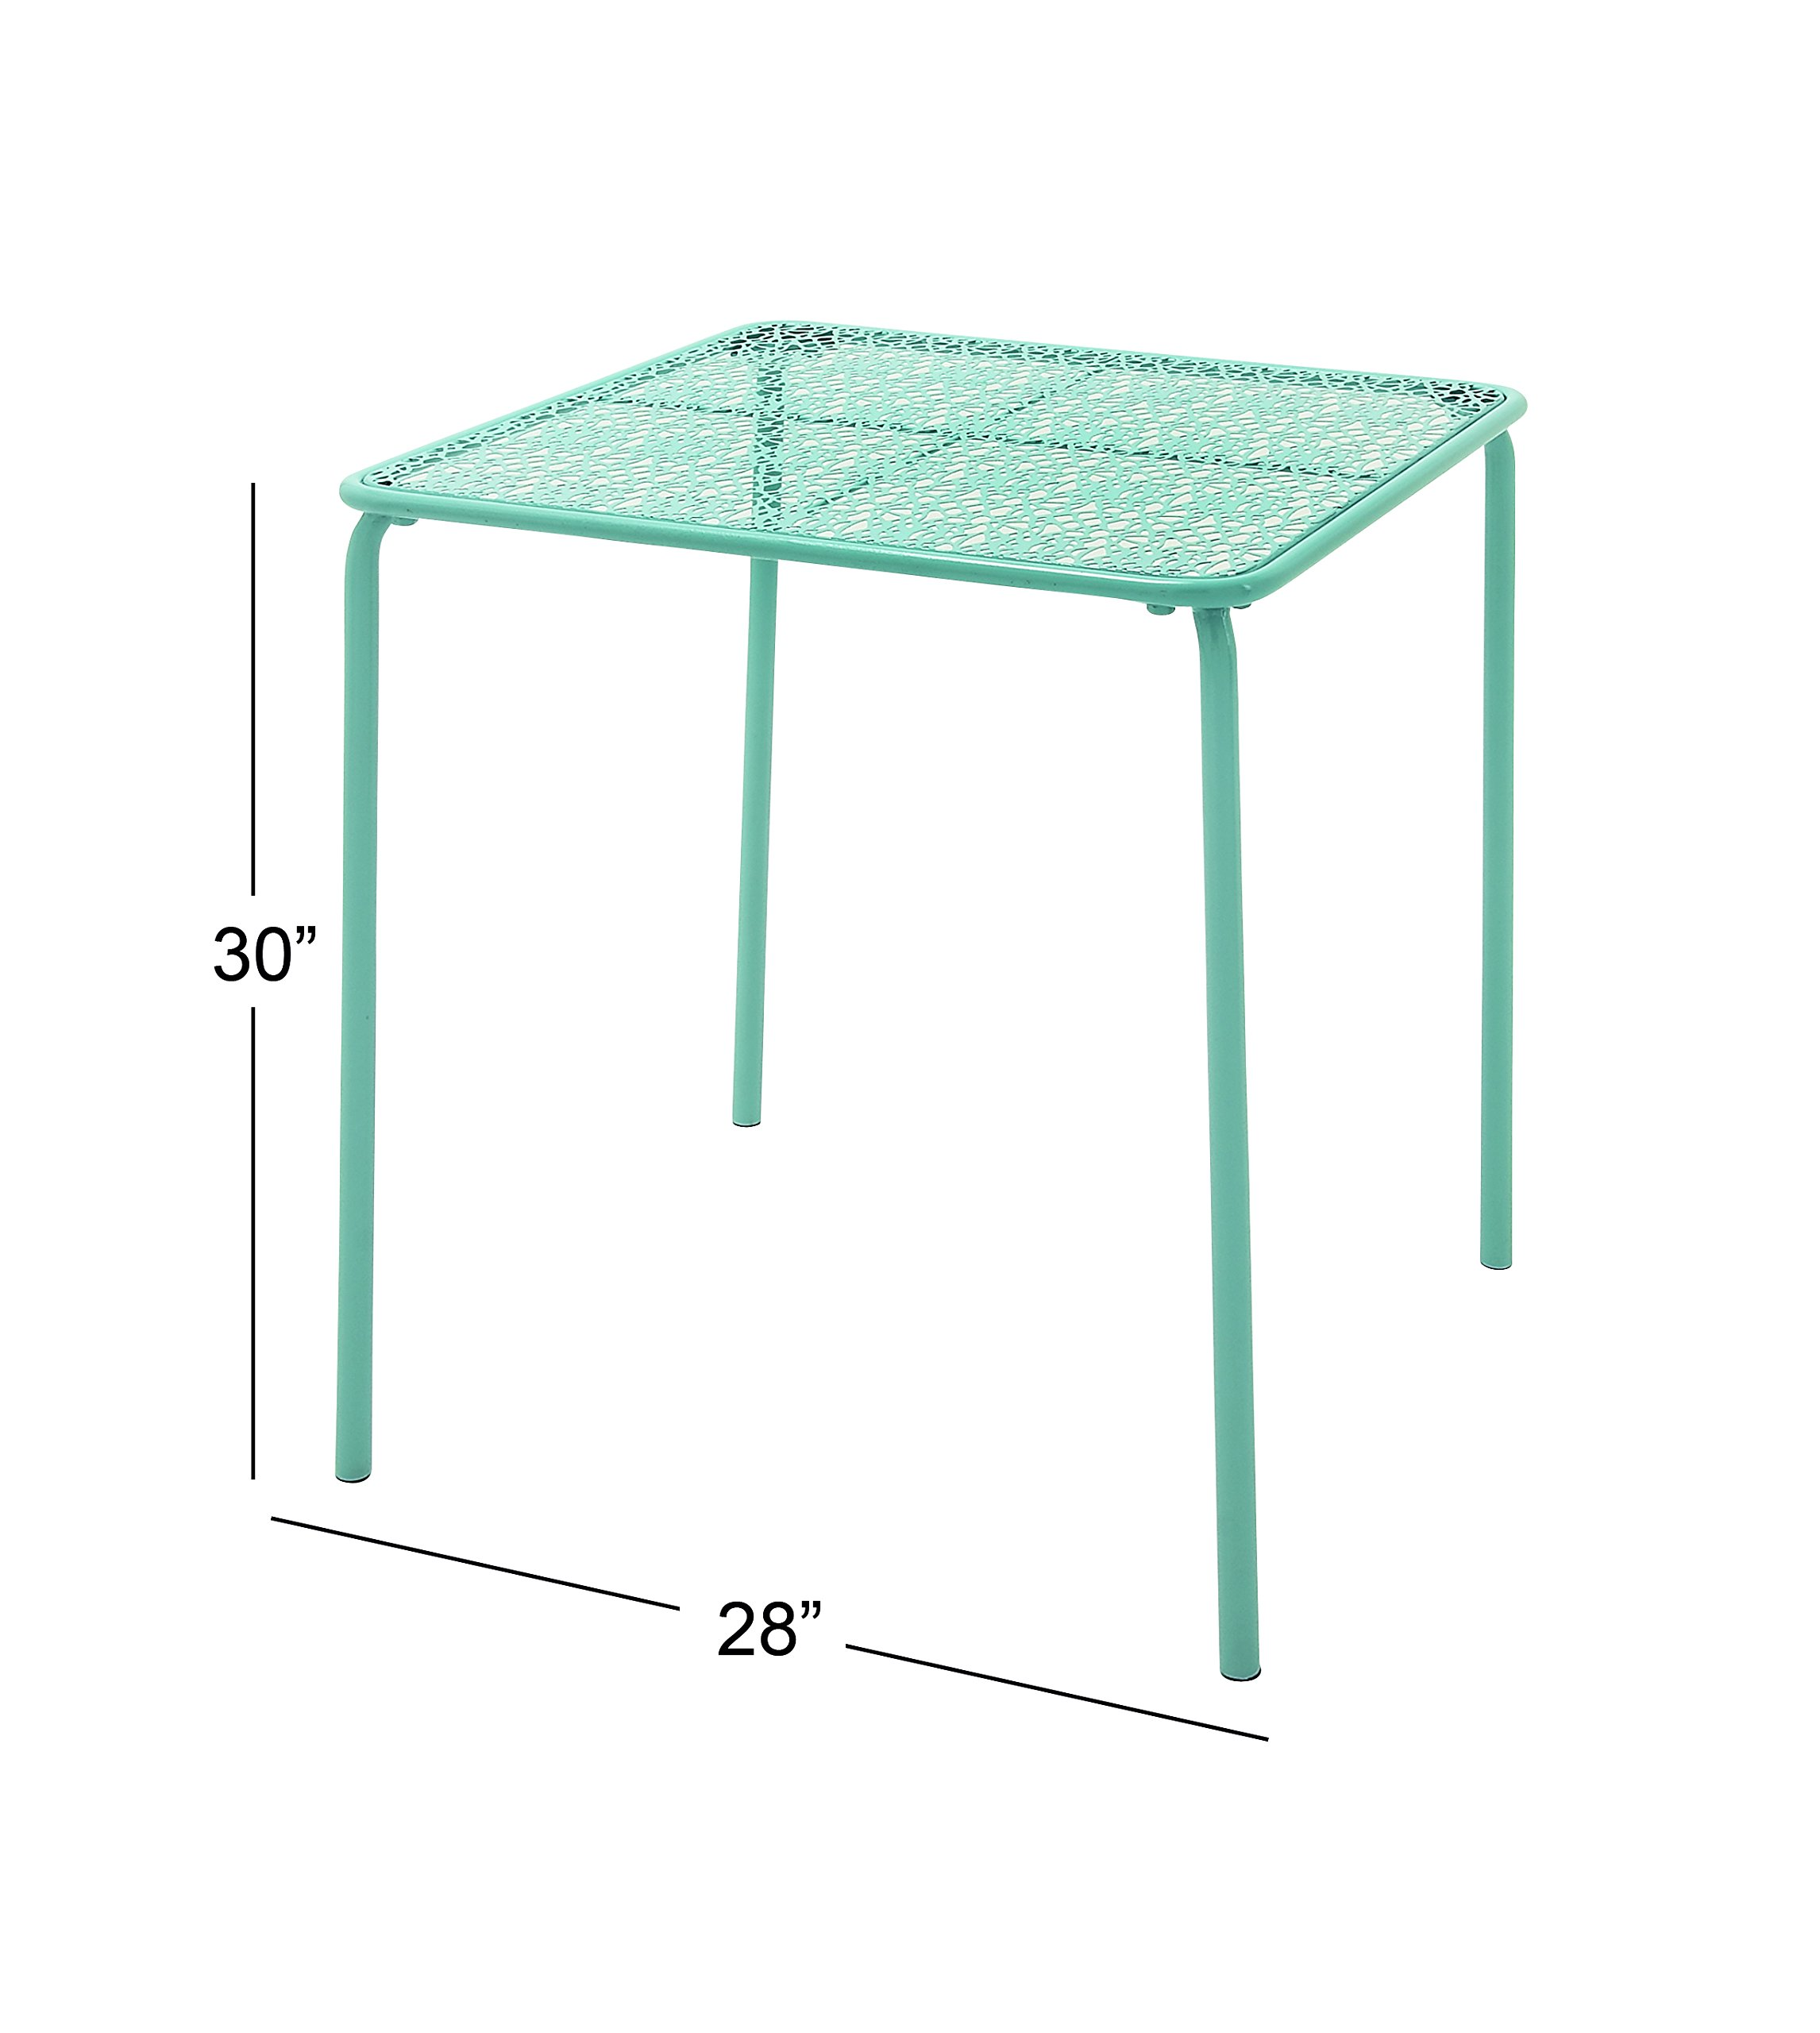 """Deco 79 65448 Metal Outdoor Table, 28"""" x 30"""" - Suitable to use as a decorative item Unique home decor This product is manufactured in China - patio-tables, patio-furniture, patio - 810UU2WerbL -"""